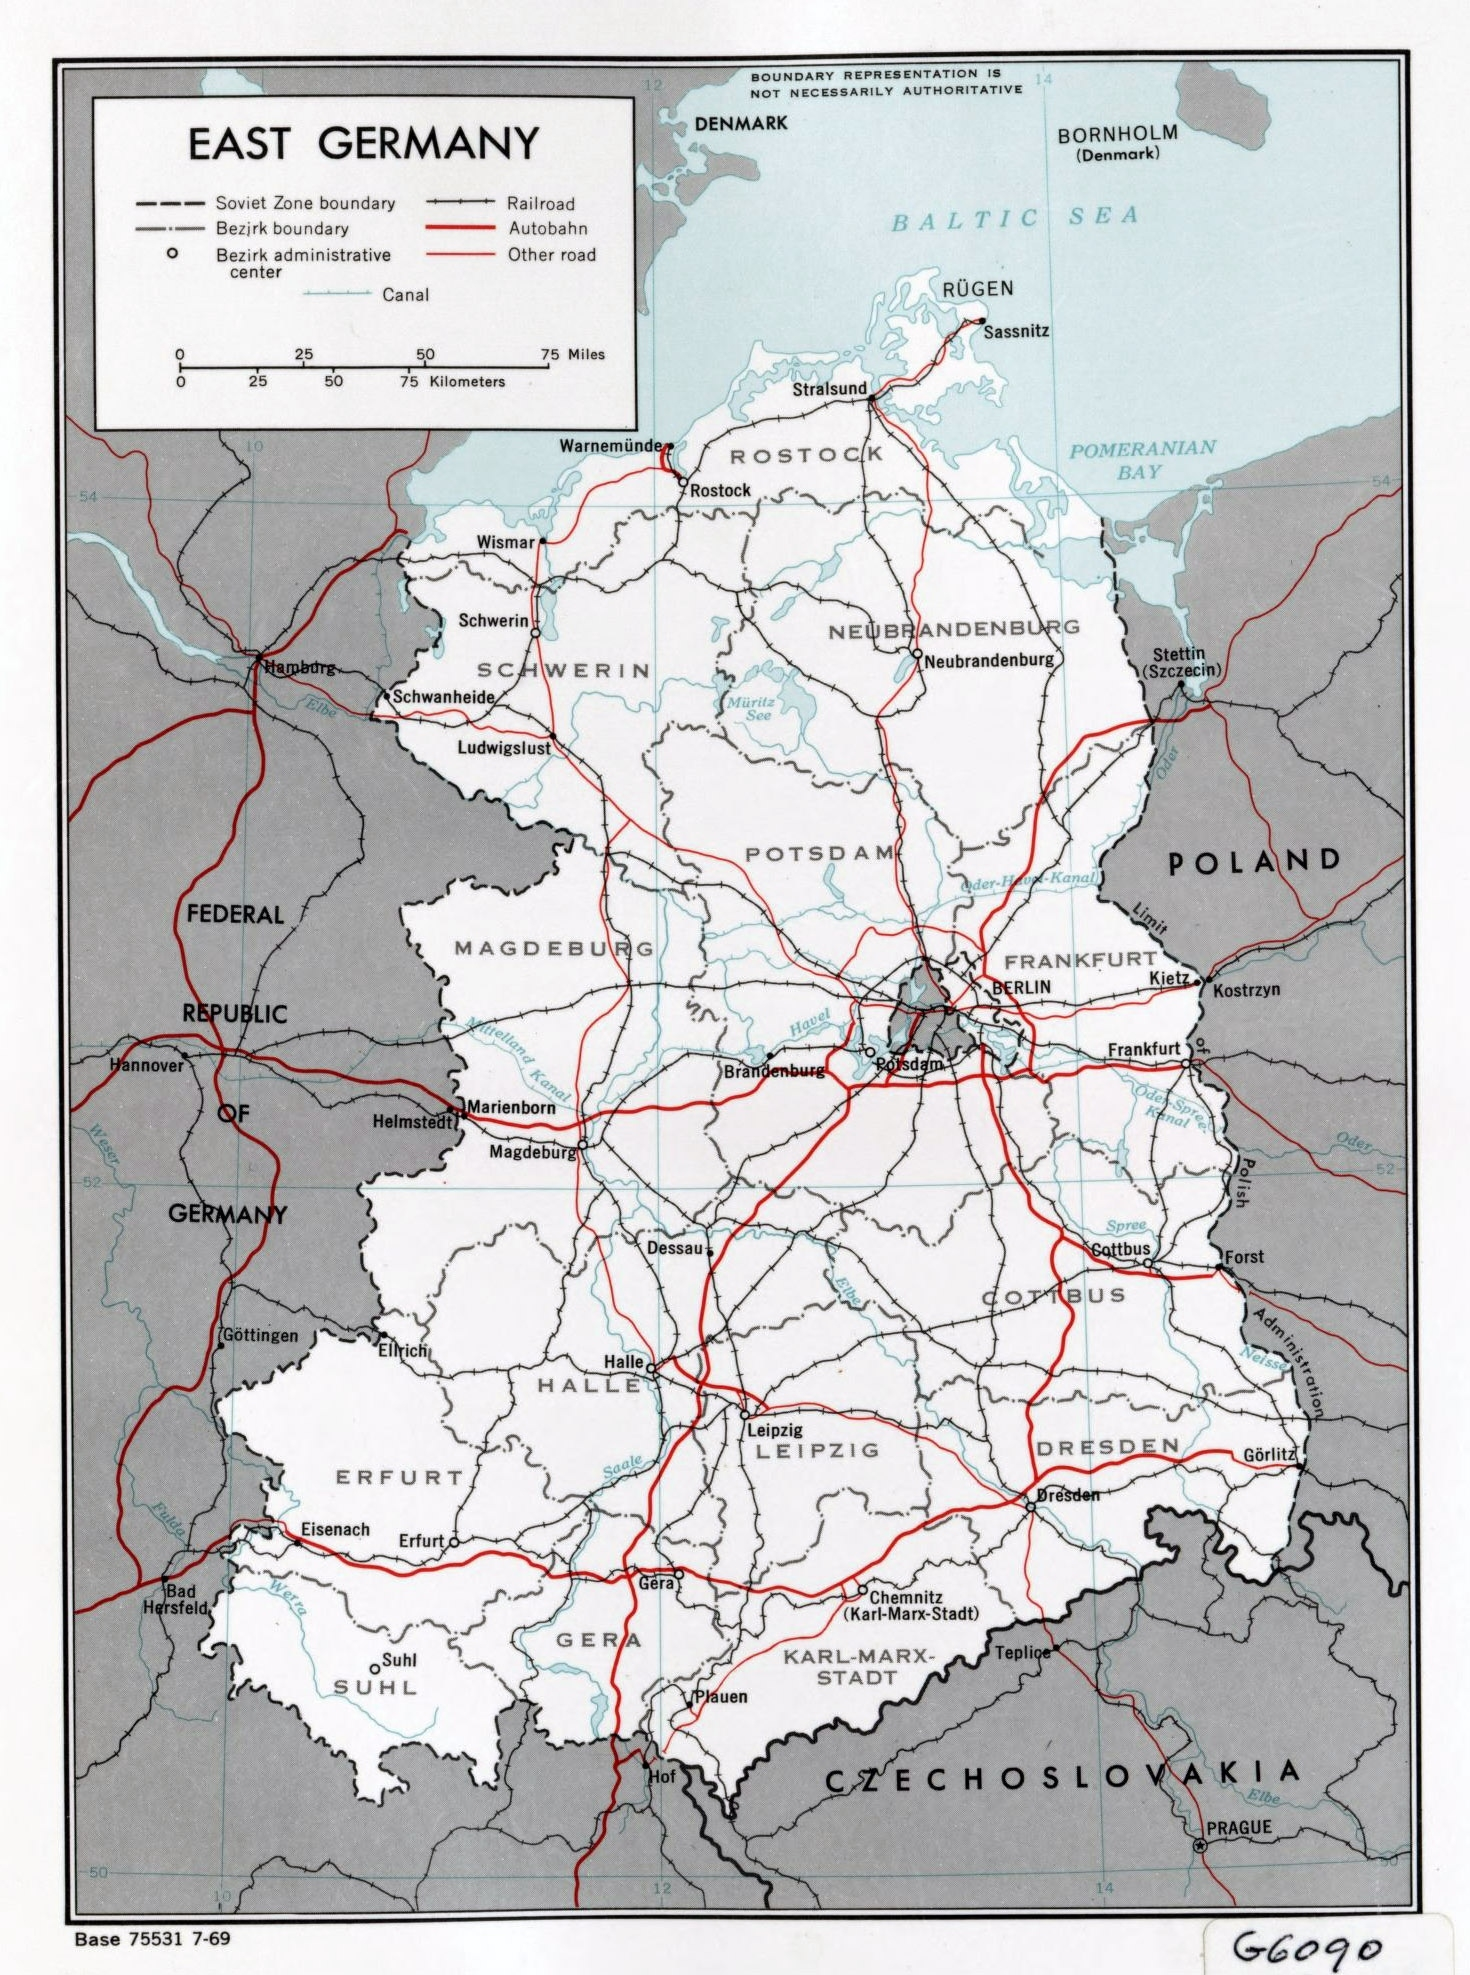 Large Political And Administrative Map Of East Germany With Roads intended for East Germany Map With Cities